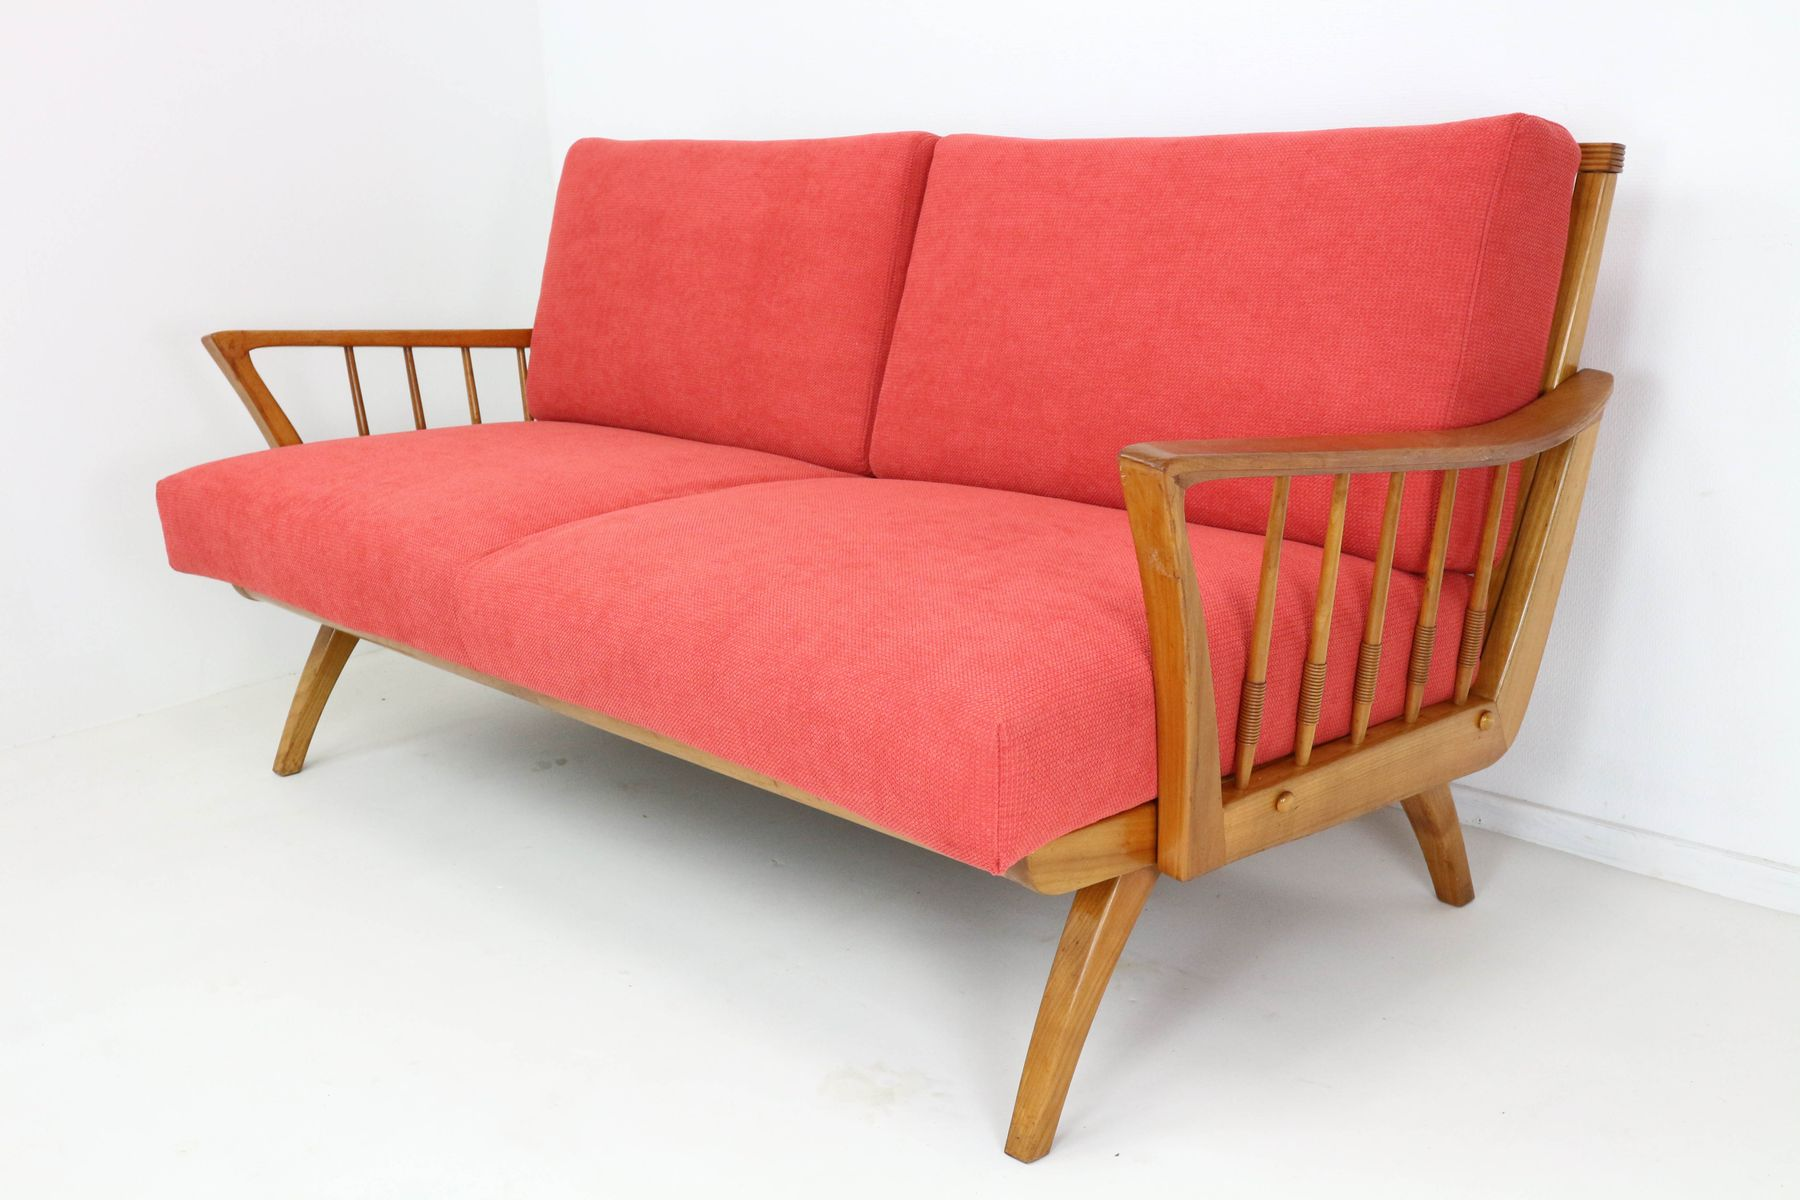 antimott sofa or daybed from walter knoll 1950s for sale at pamono. Black Bedroom Furniture Sets. Home Design Ideas